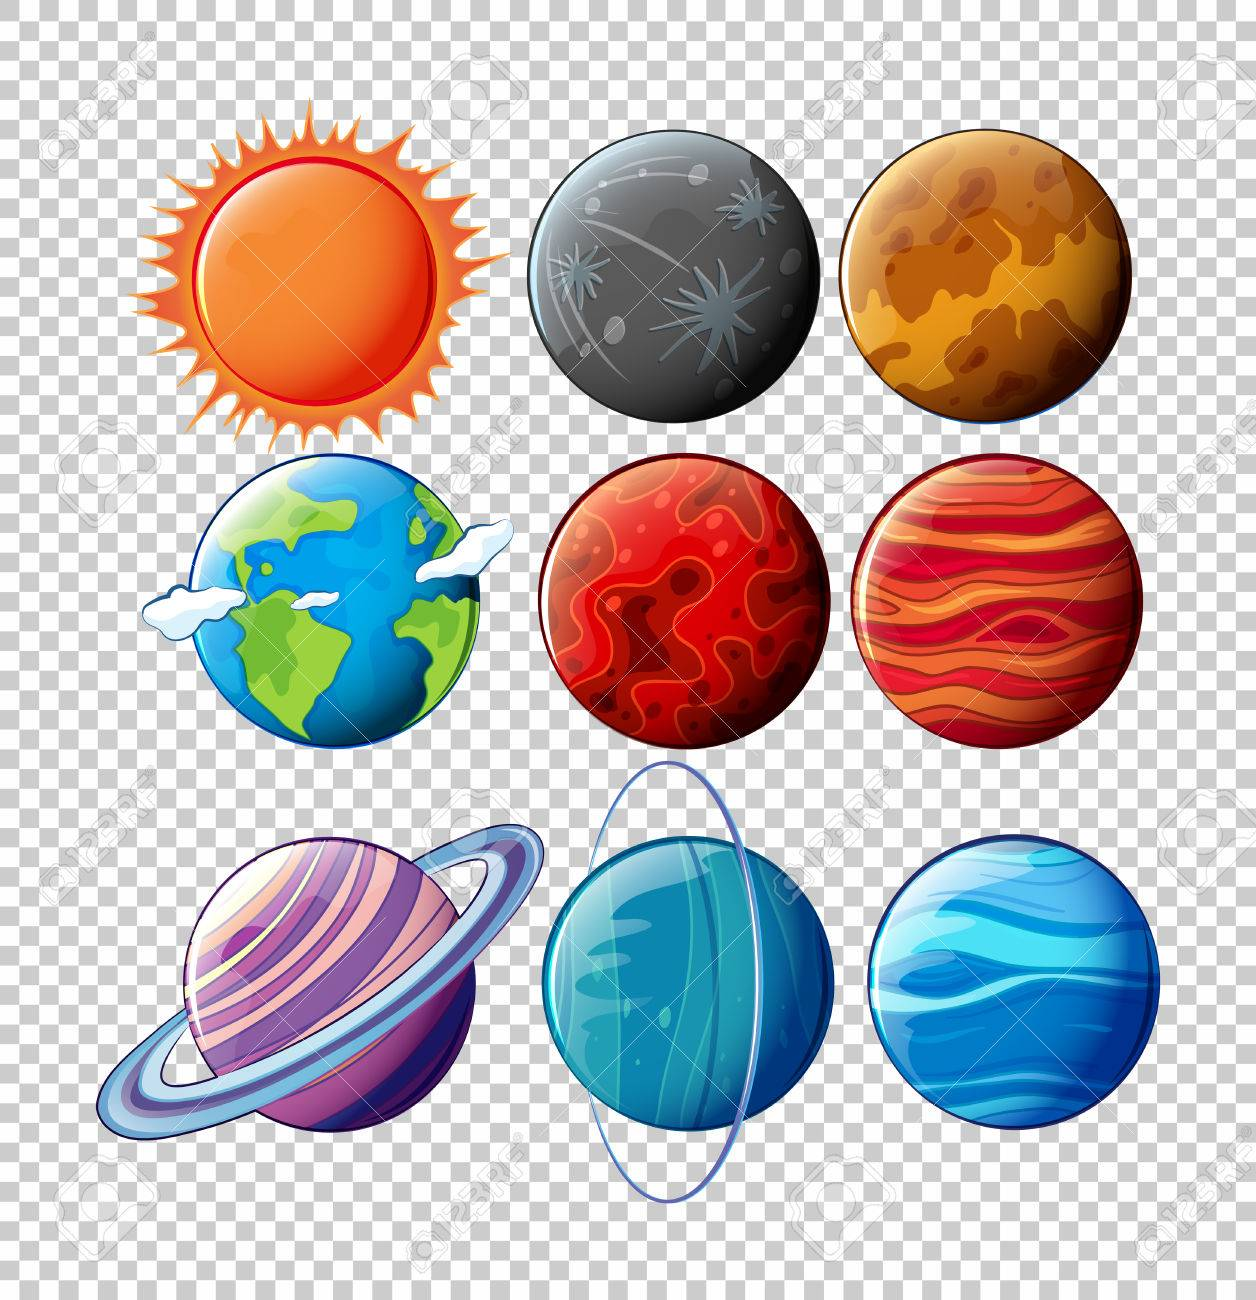 Different planets in solar system on transparent background illustration.